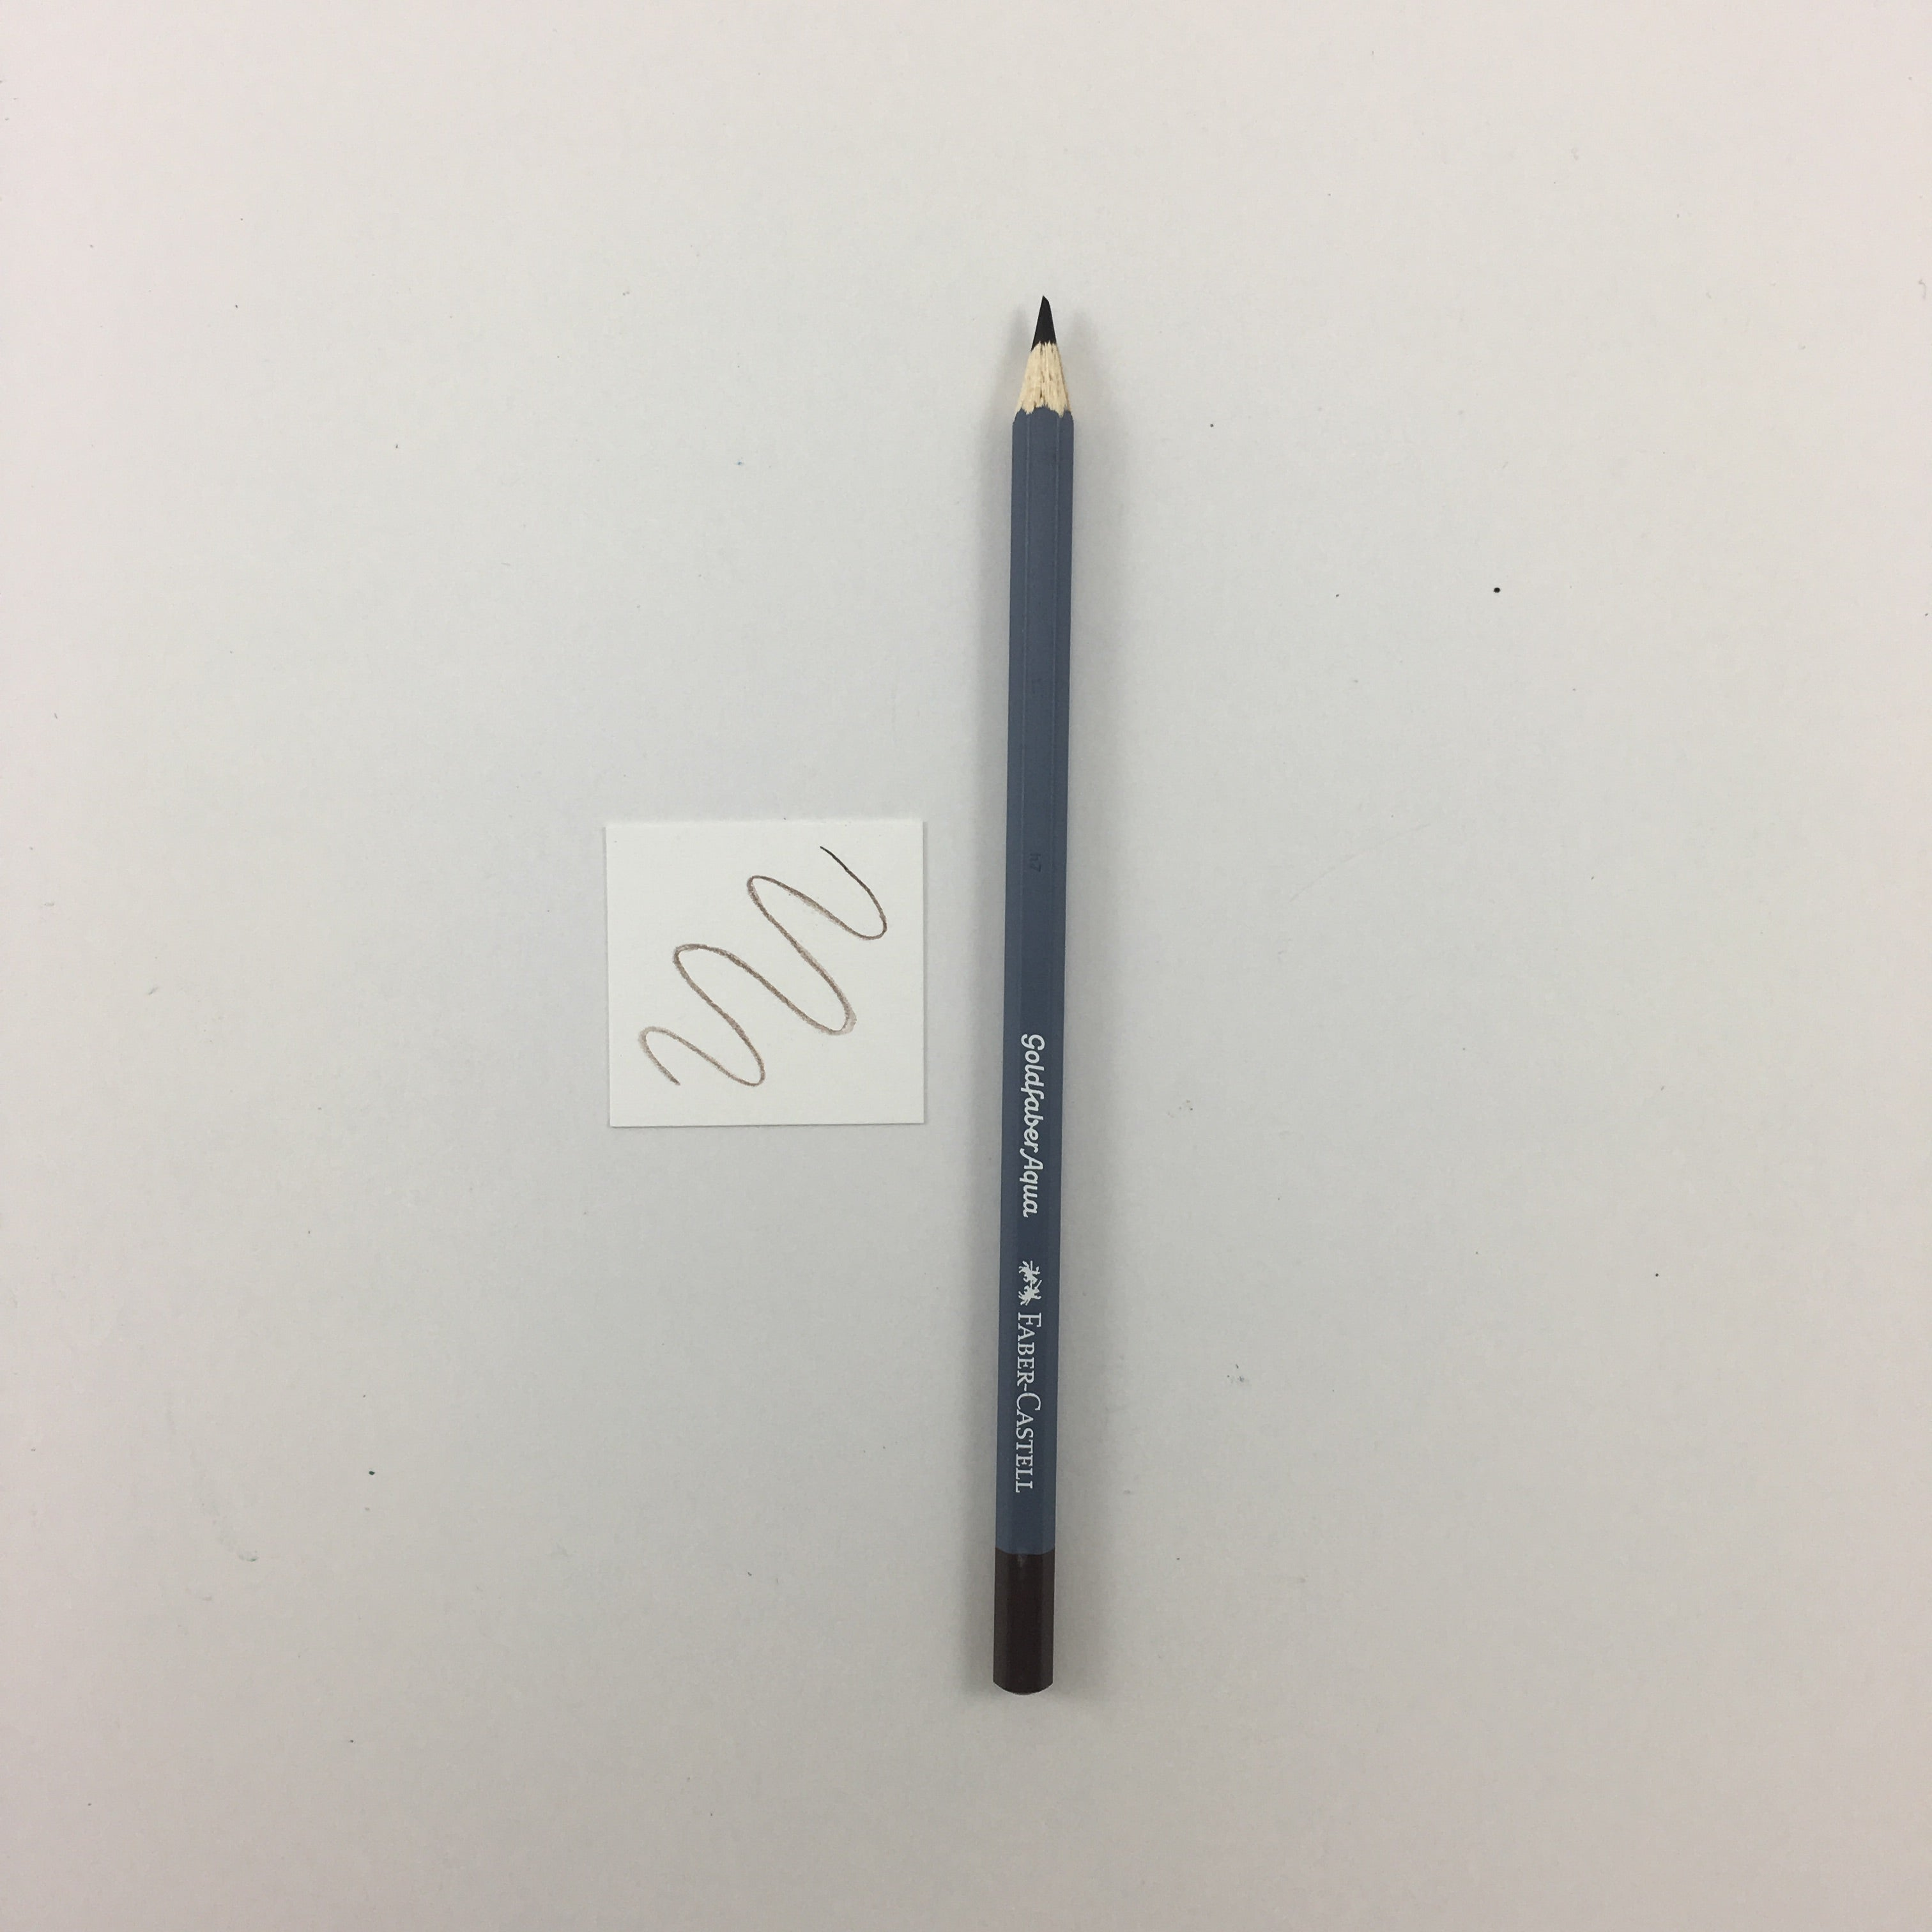 Faber-Castell Goldfaber Aqua Watercolor Pencils - Individuals - 176 - Van Dyck Brown by Faber-Castell - K. A. Artist Shop